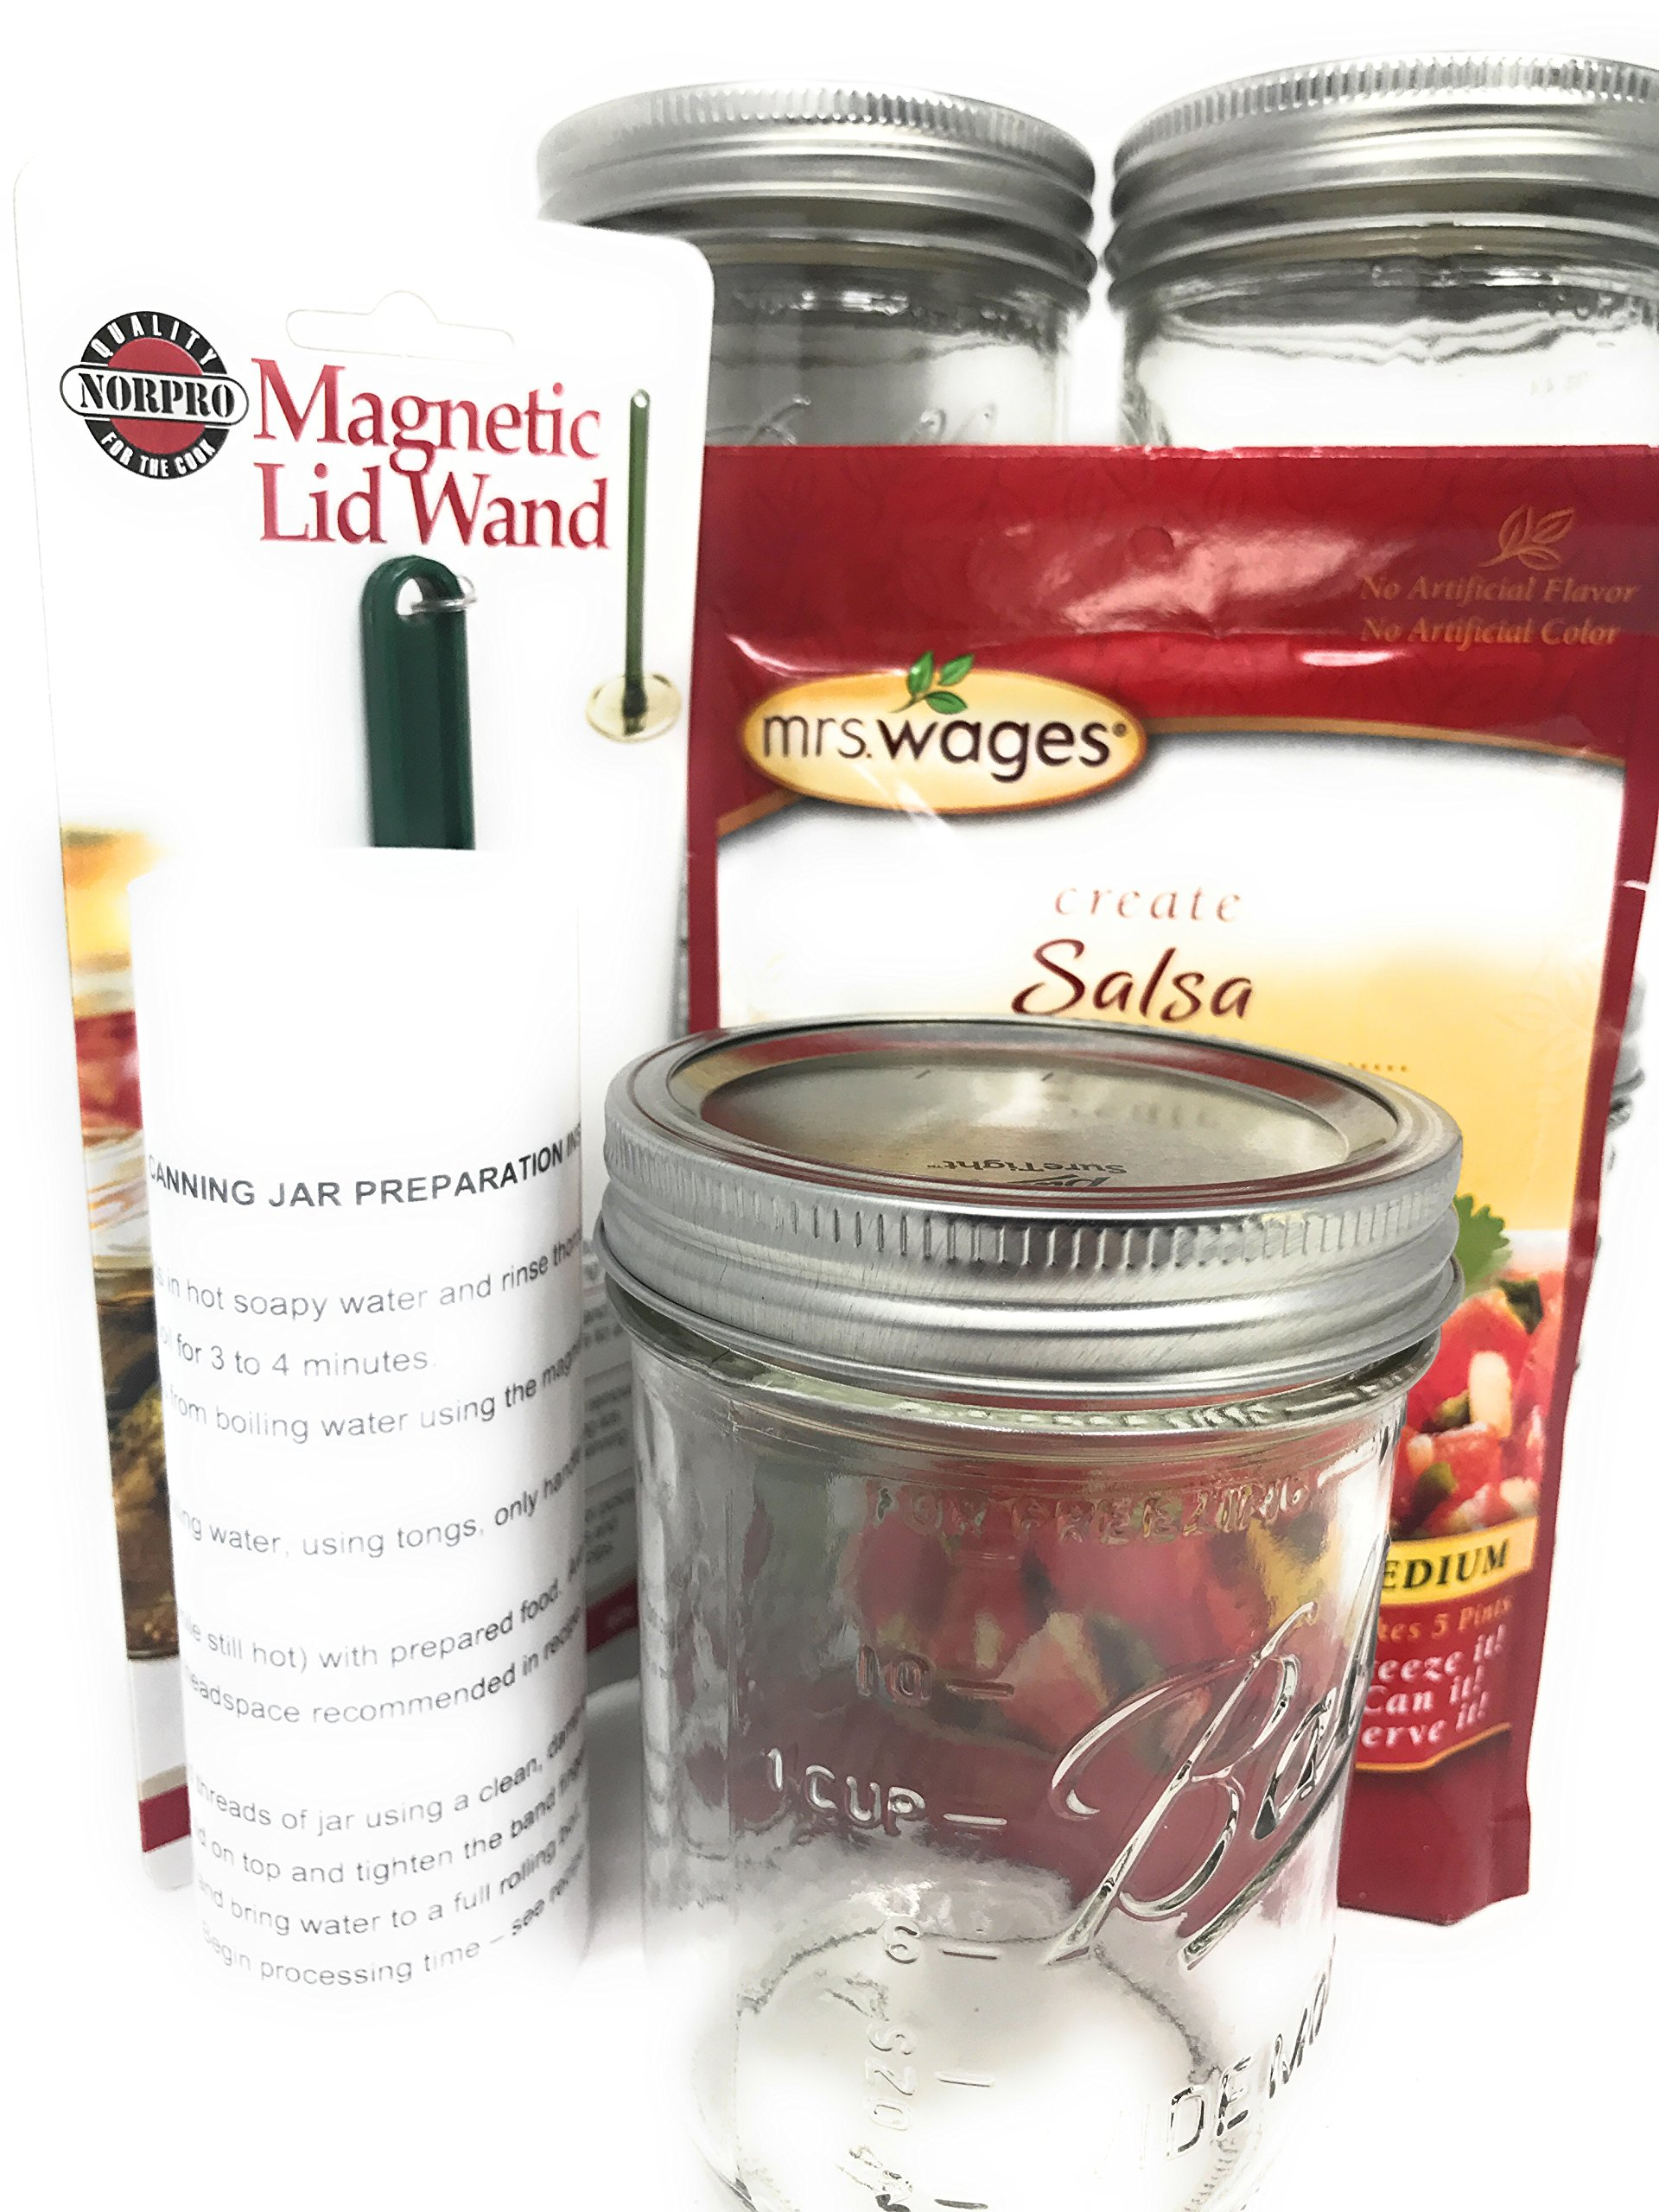 Salsa Canning Kit, Jars Gift-Set Spices, Magnet Wand makes 5 1-Pint Jars; with Canning Preparation Instructions